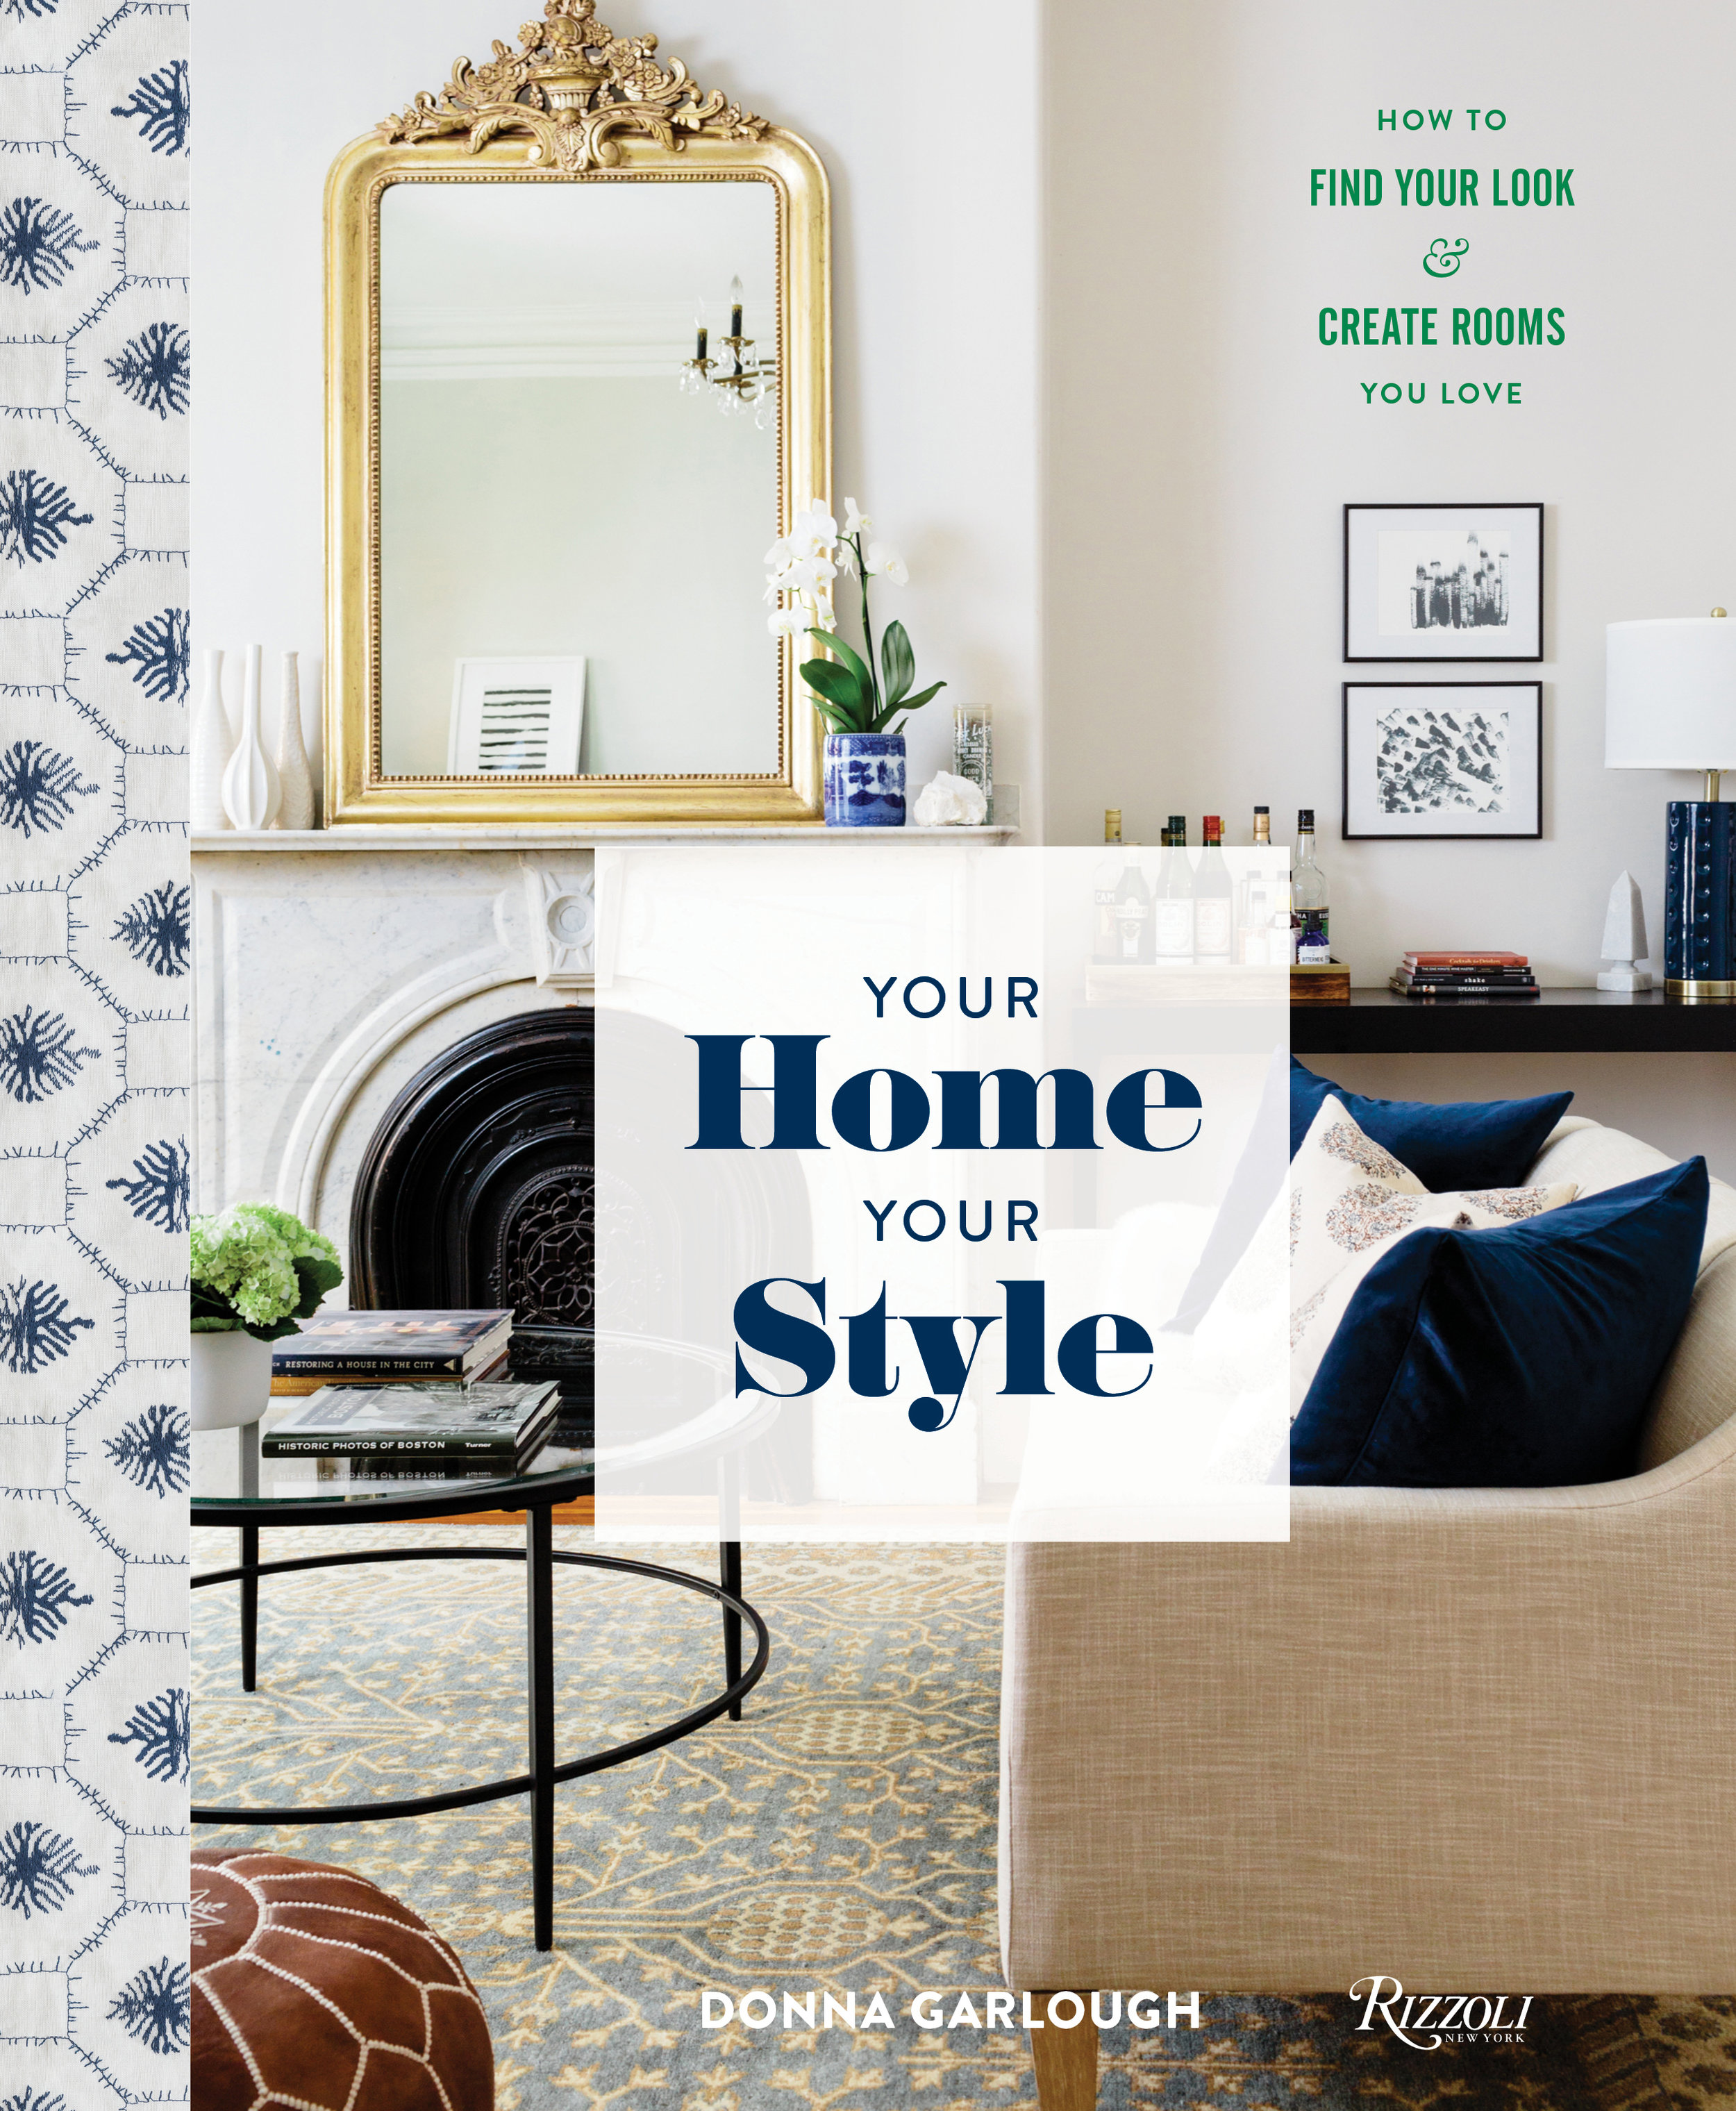 YOUR HOME YOUR STYLE_cover final.JPG